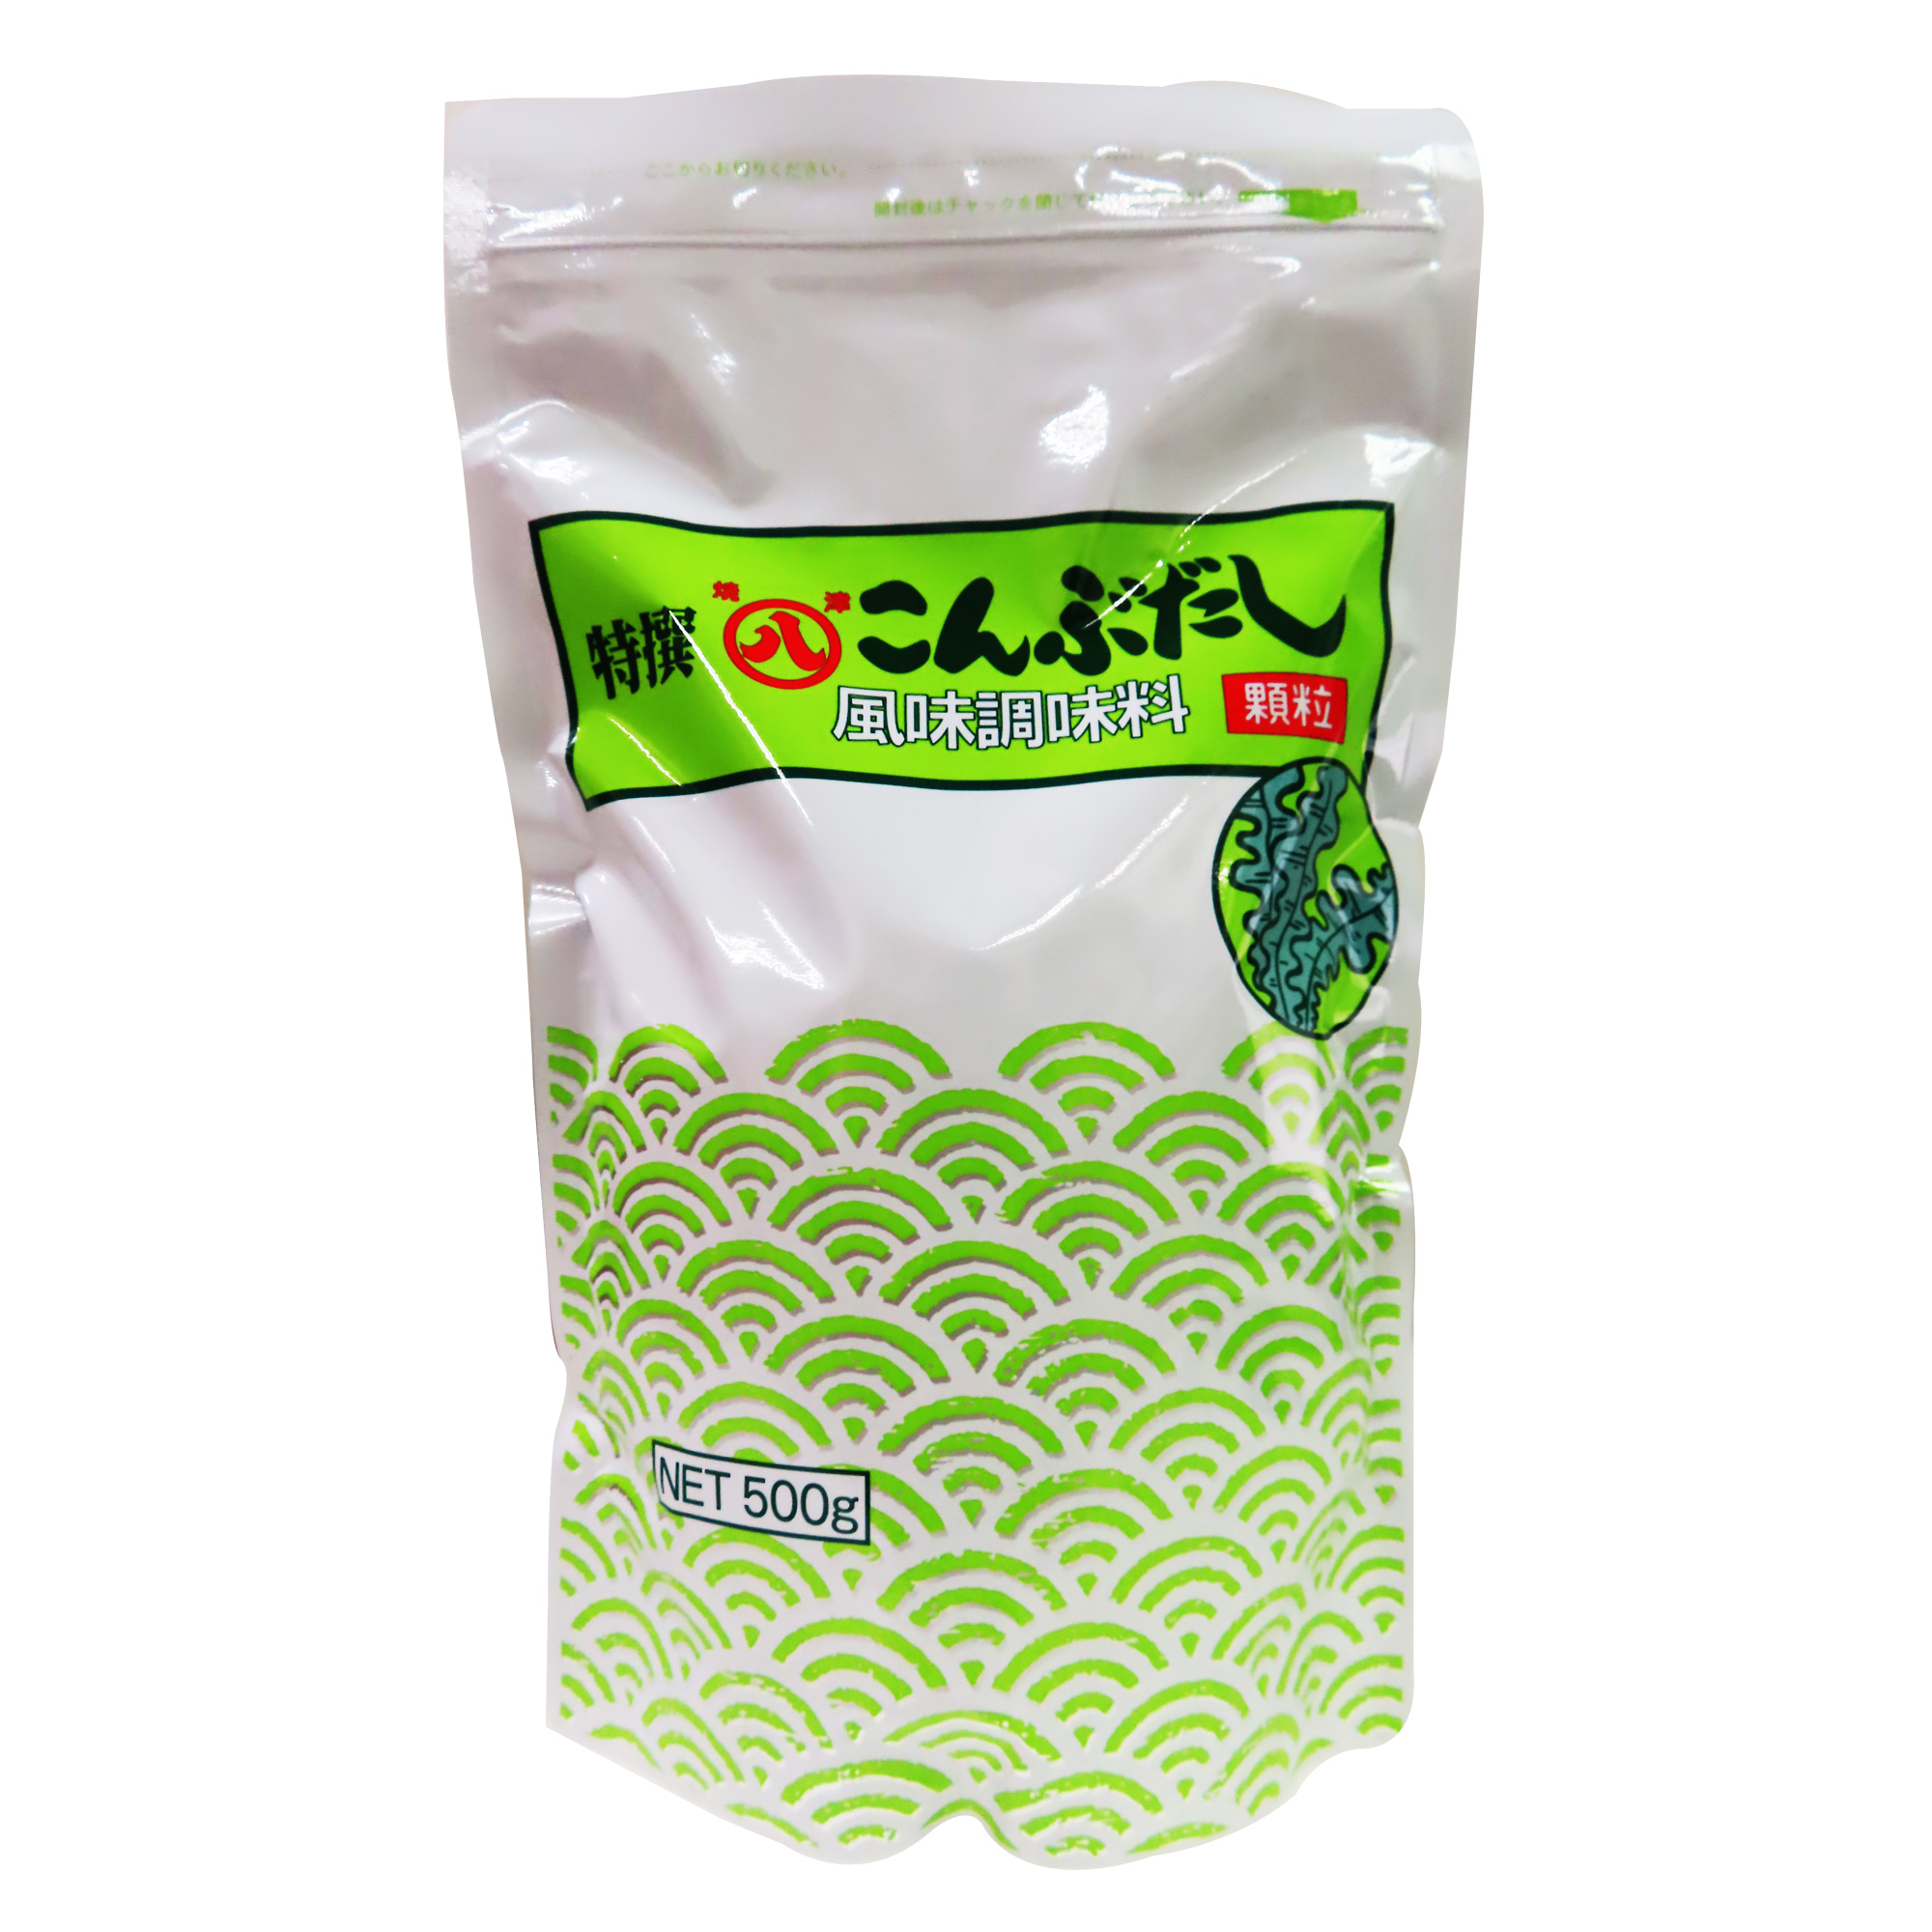 Image Kombu Dashi Seasoning 风味调味料 500grams